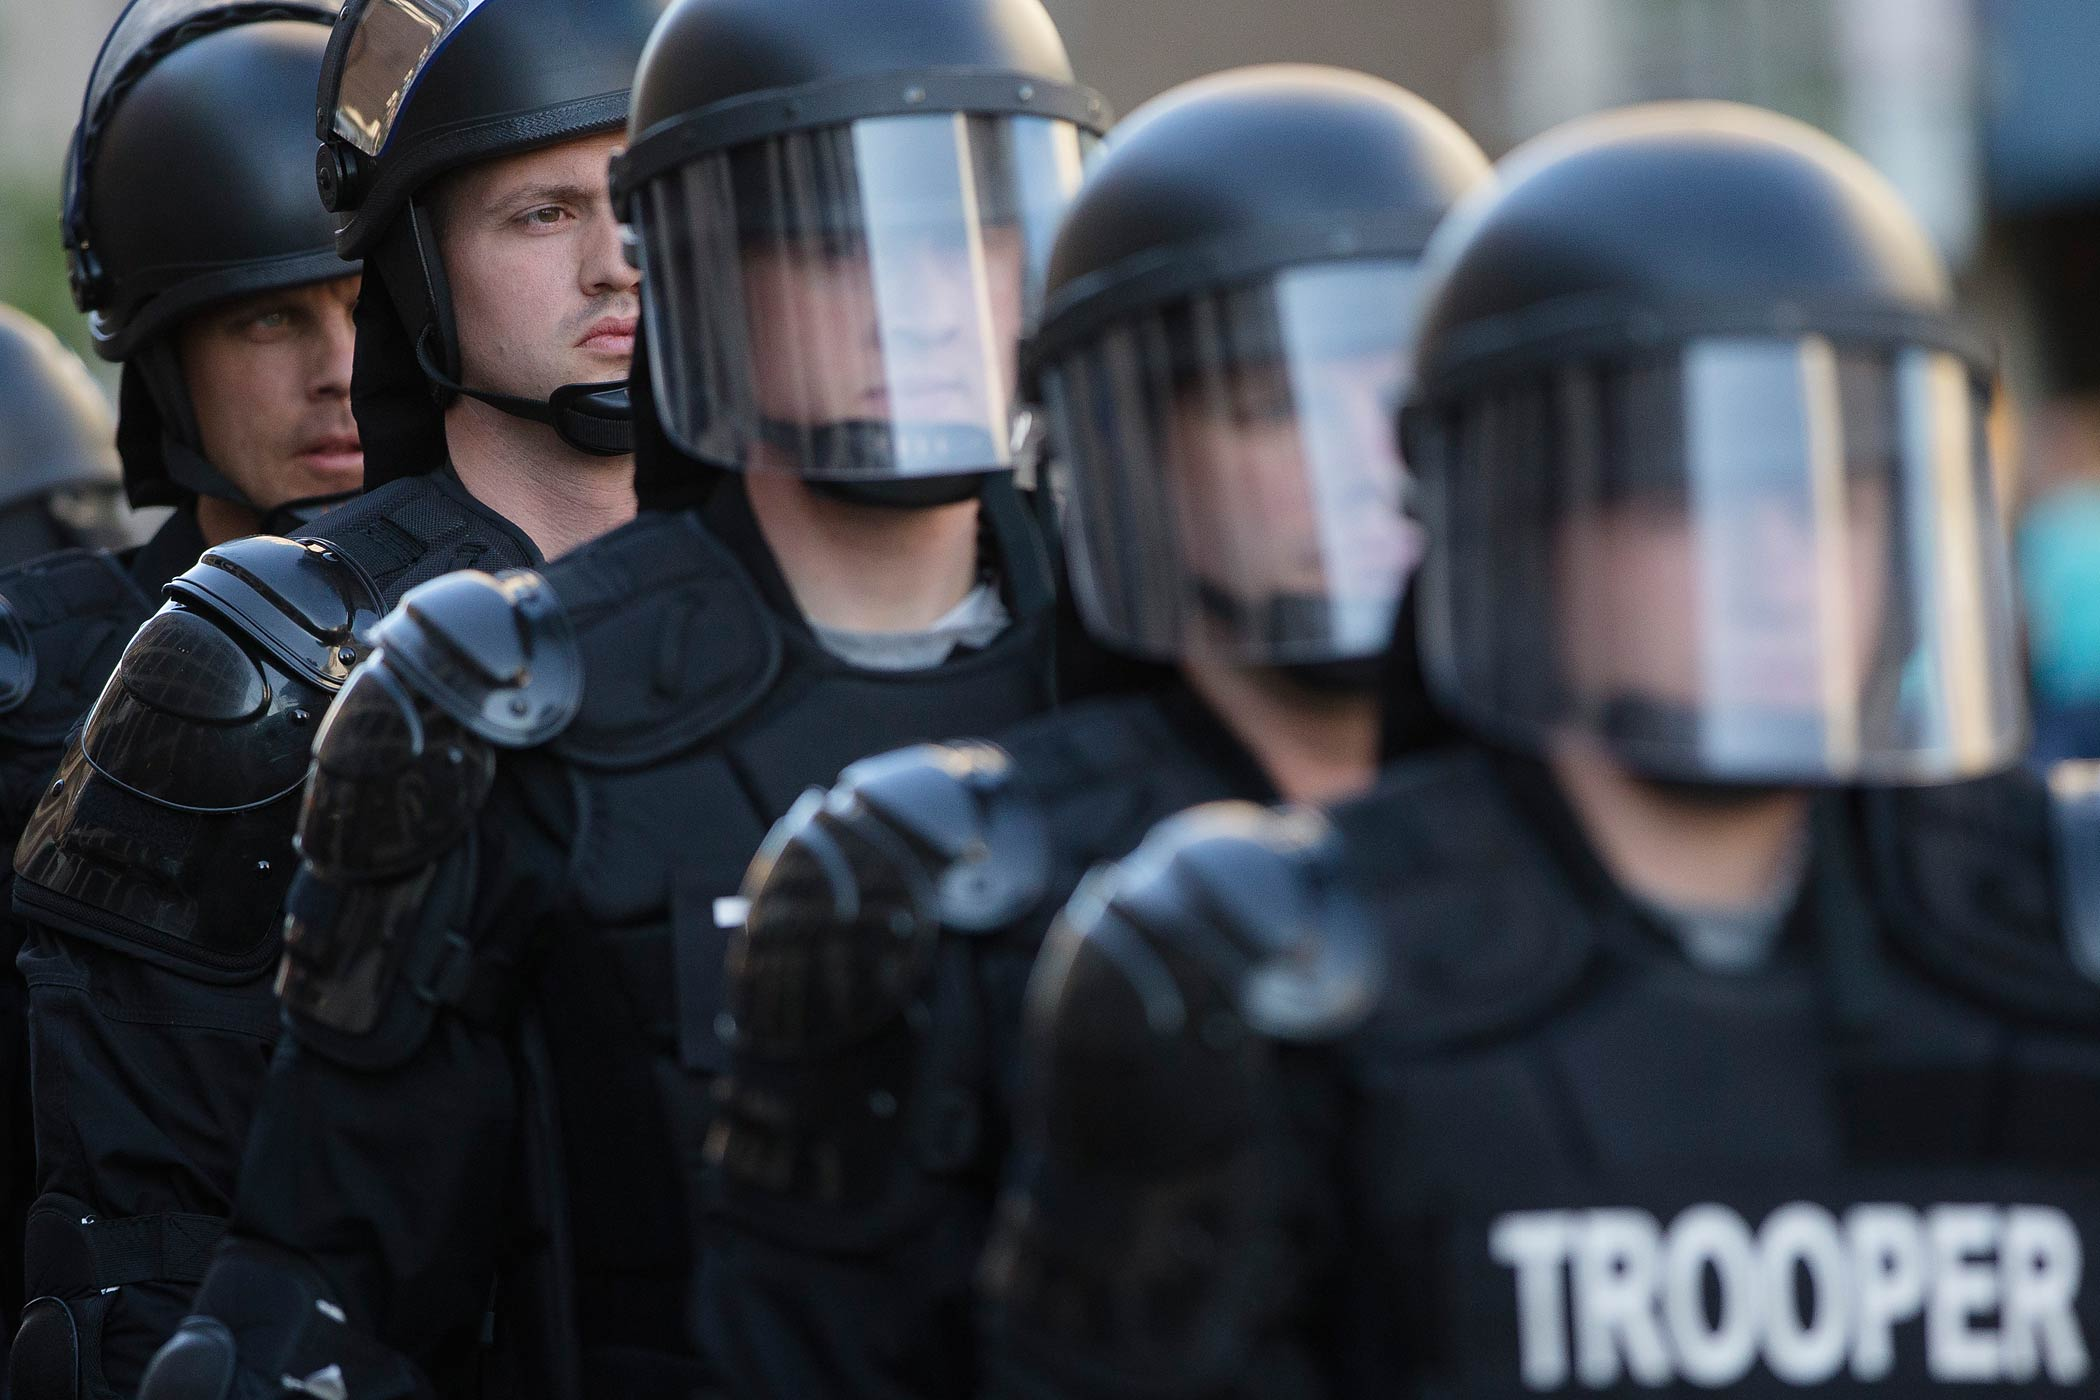 Riot police stand in formation as a protest forms against the acquittal of Michael Brelo, a patrolman charged in the shooting deaths of two unarmed suspects, on May 23, 2015, in Cleveland.